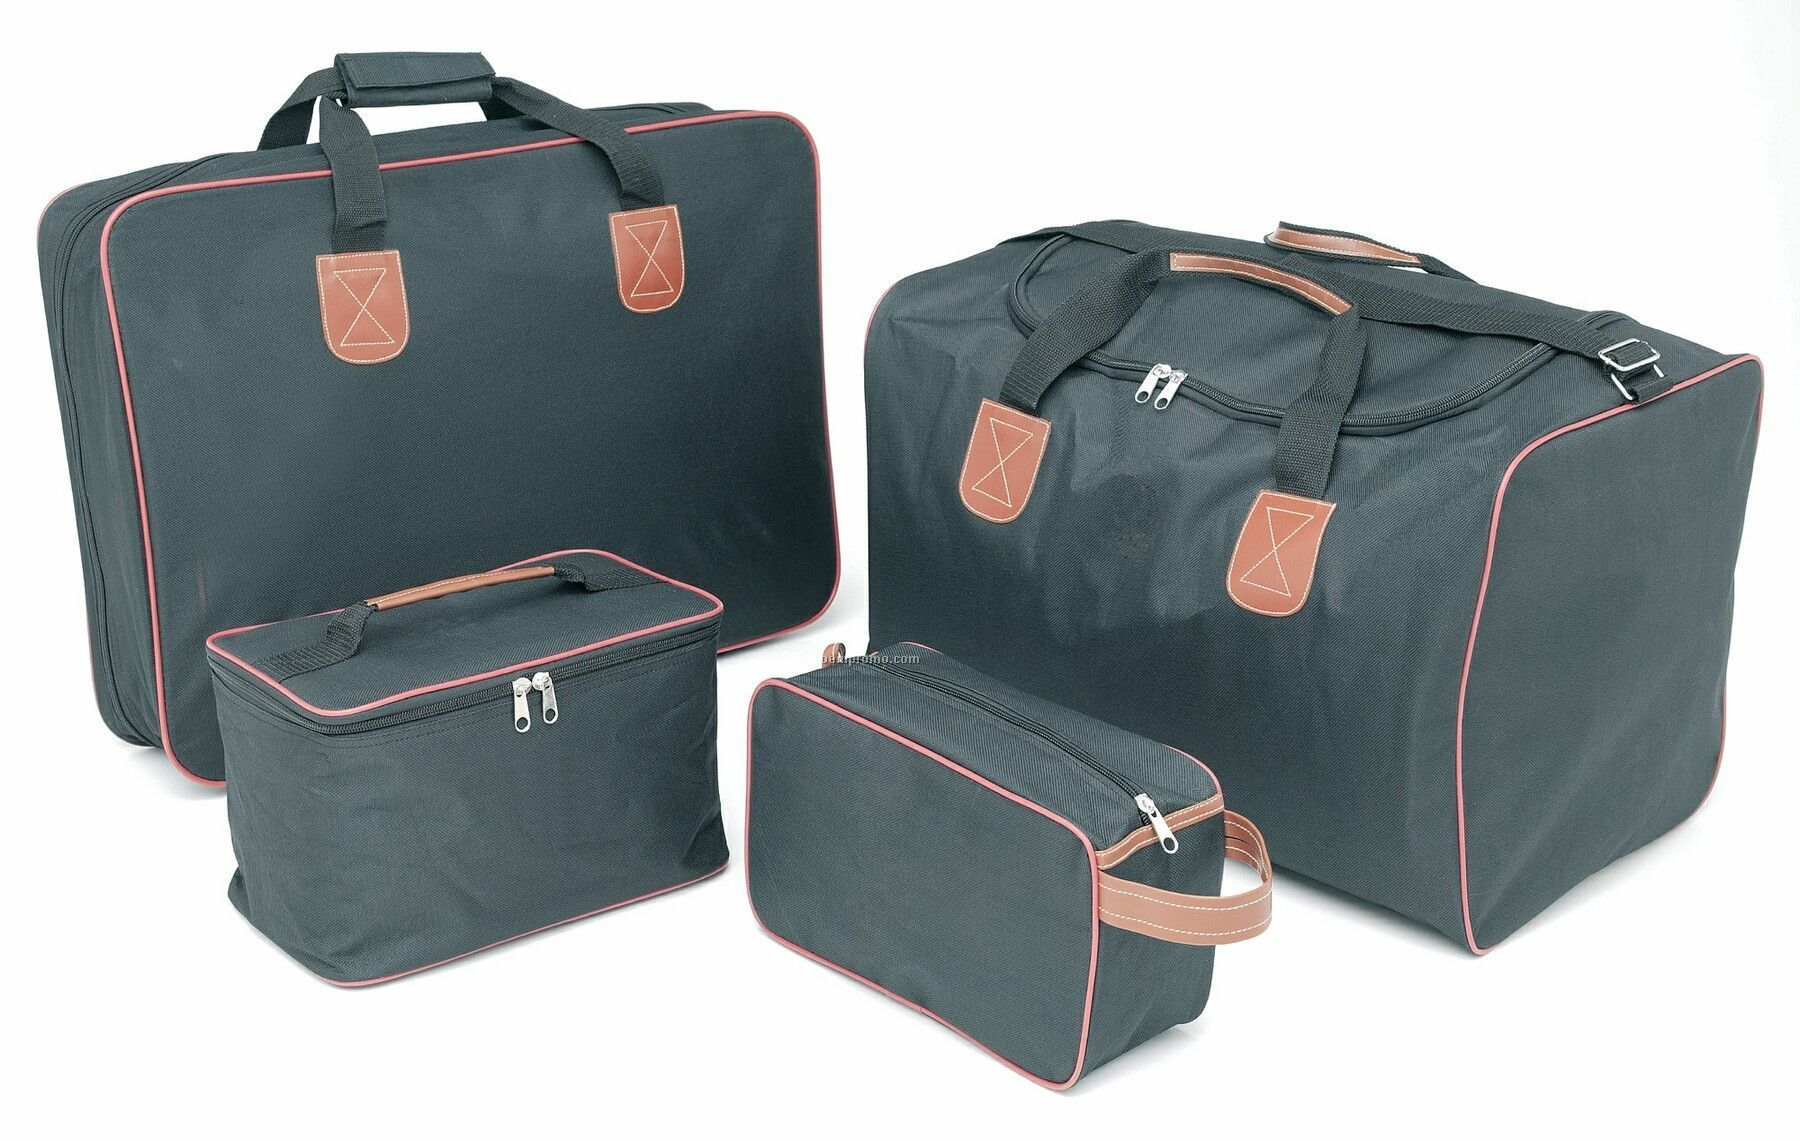 4-piece Luggage Set - Embroidered